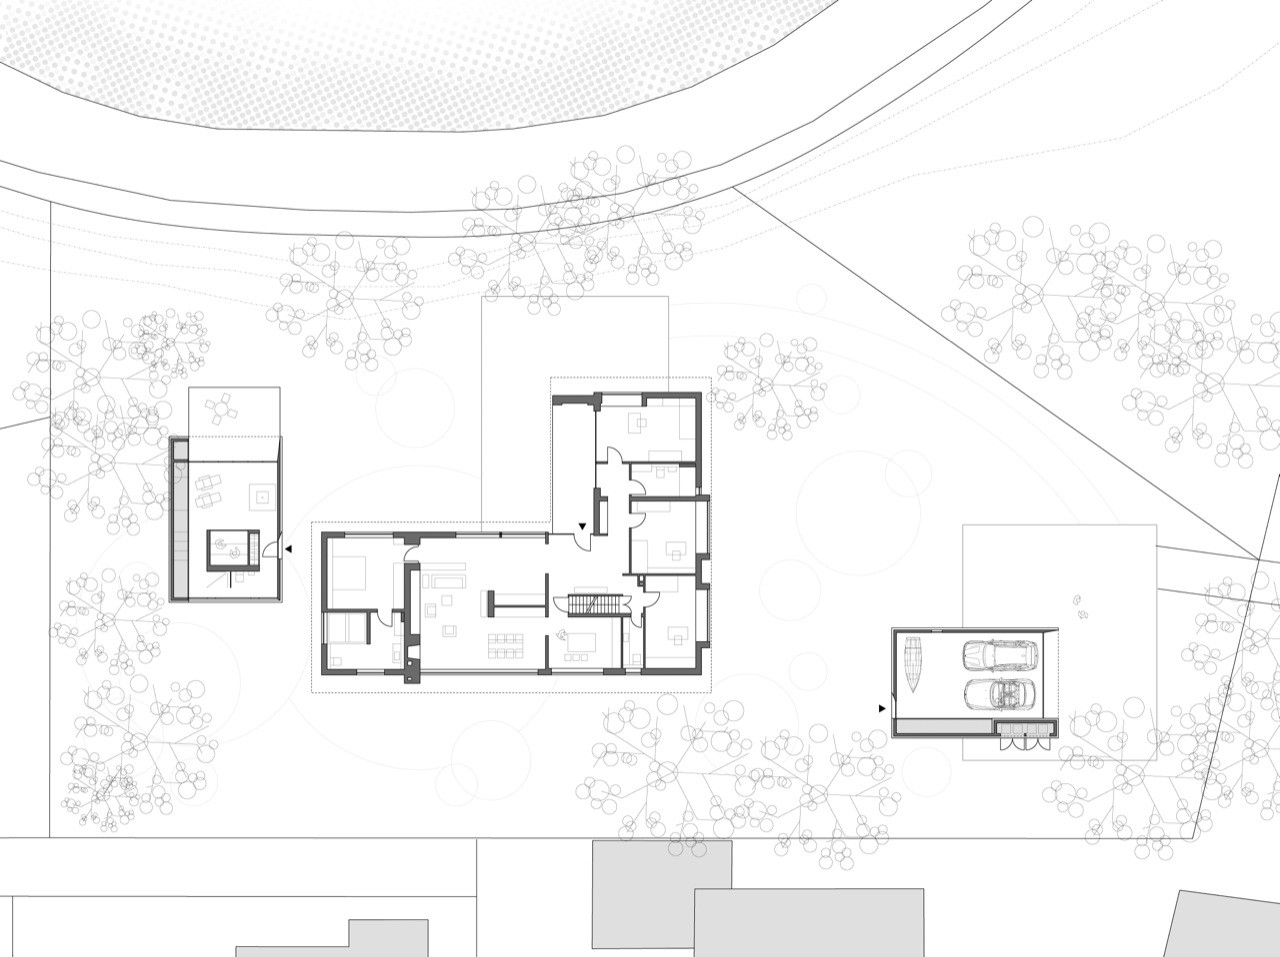 Cmyk house mcknhm architects archdaily for House site plan